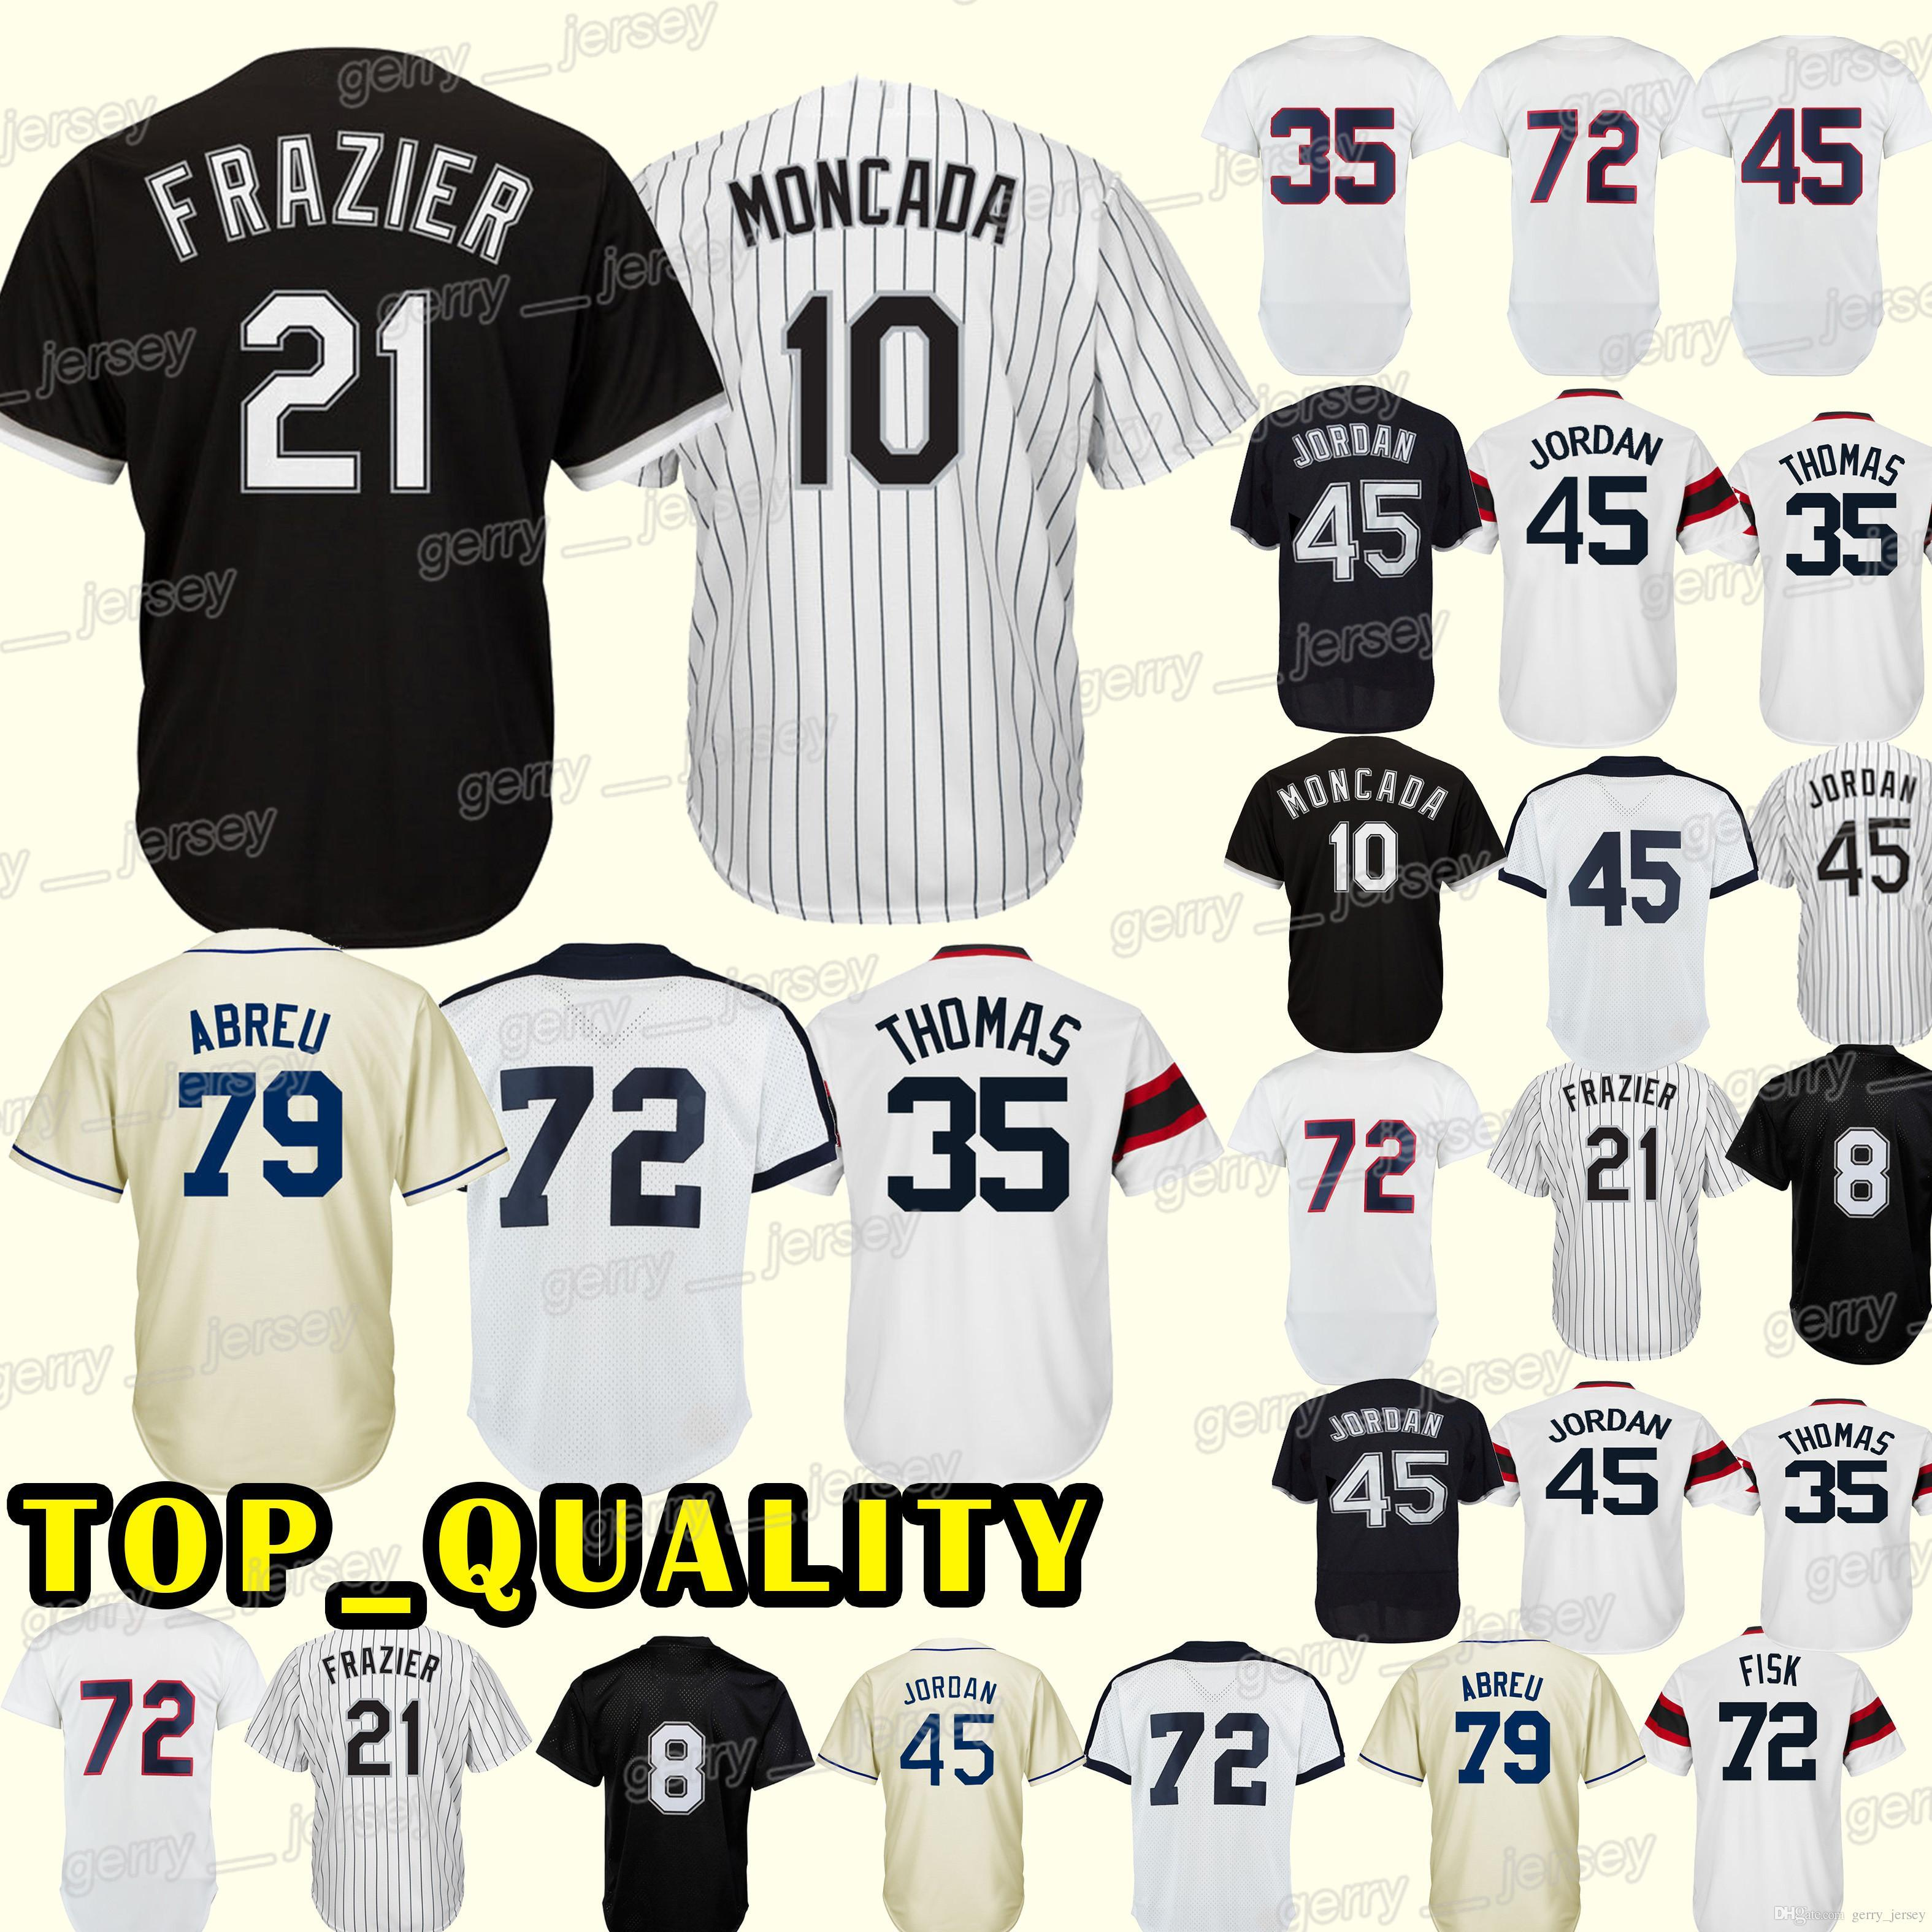 newest ab877 a7ea0 Hot Sale Jersey #8 Bo Jackson #21 Todd Frazier 45 Michael 2018 New 100%  Stitched superior quality Top MEN Jerseys